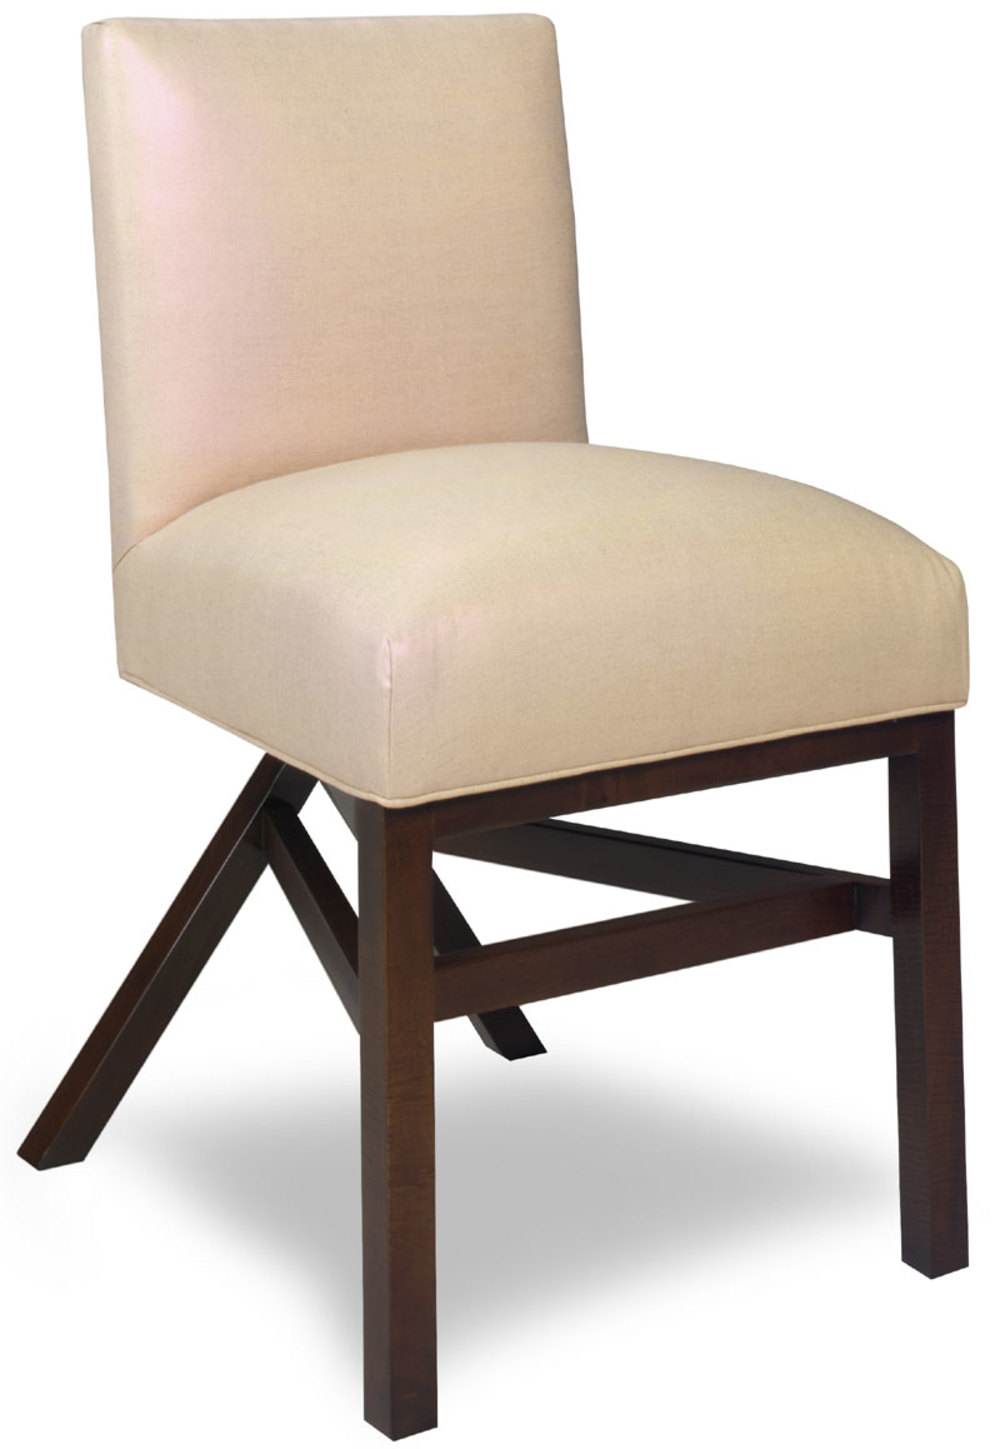 Parker Southern - Xeric Chair